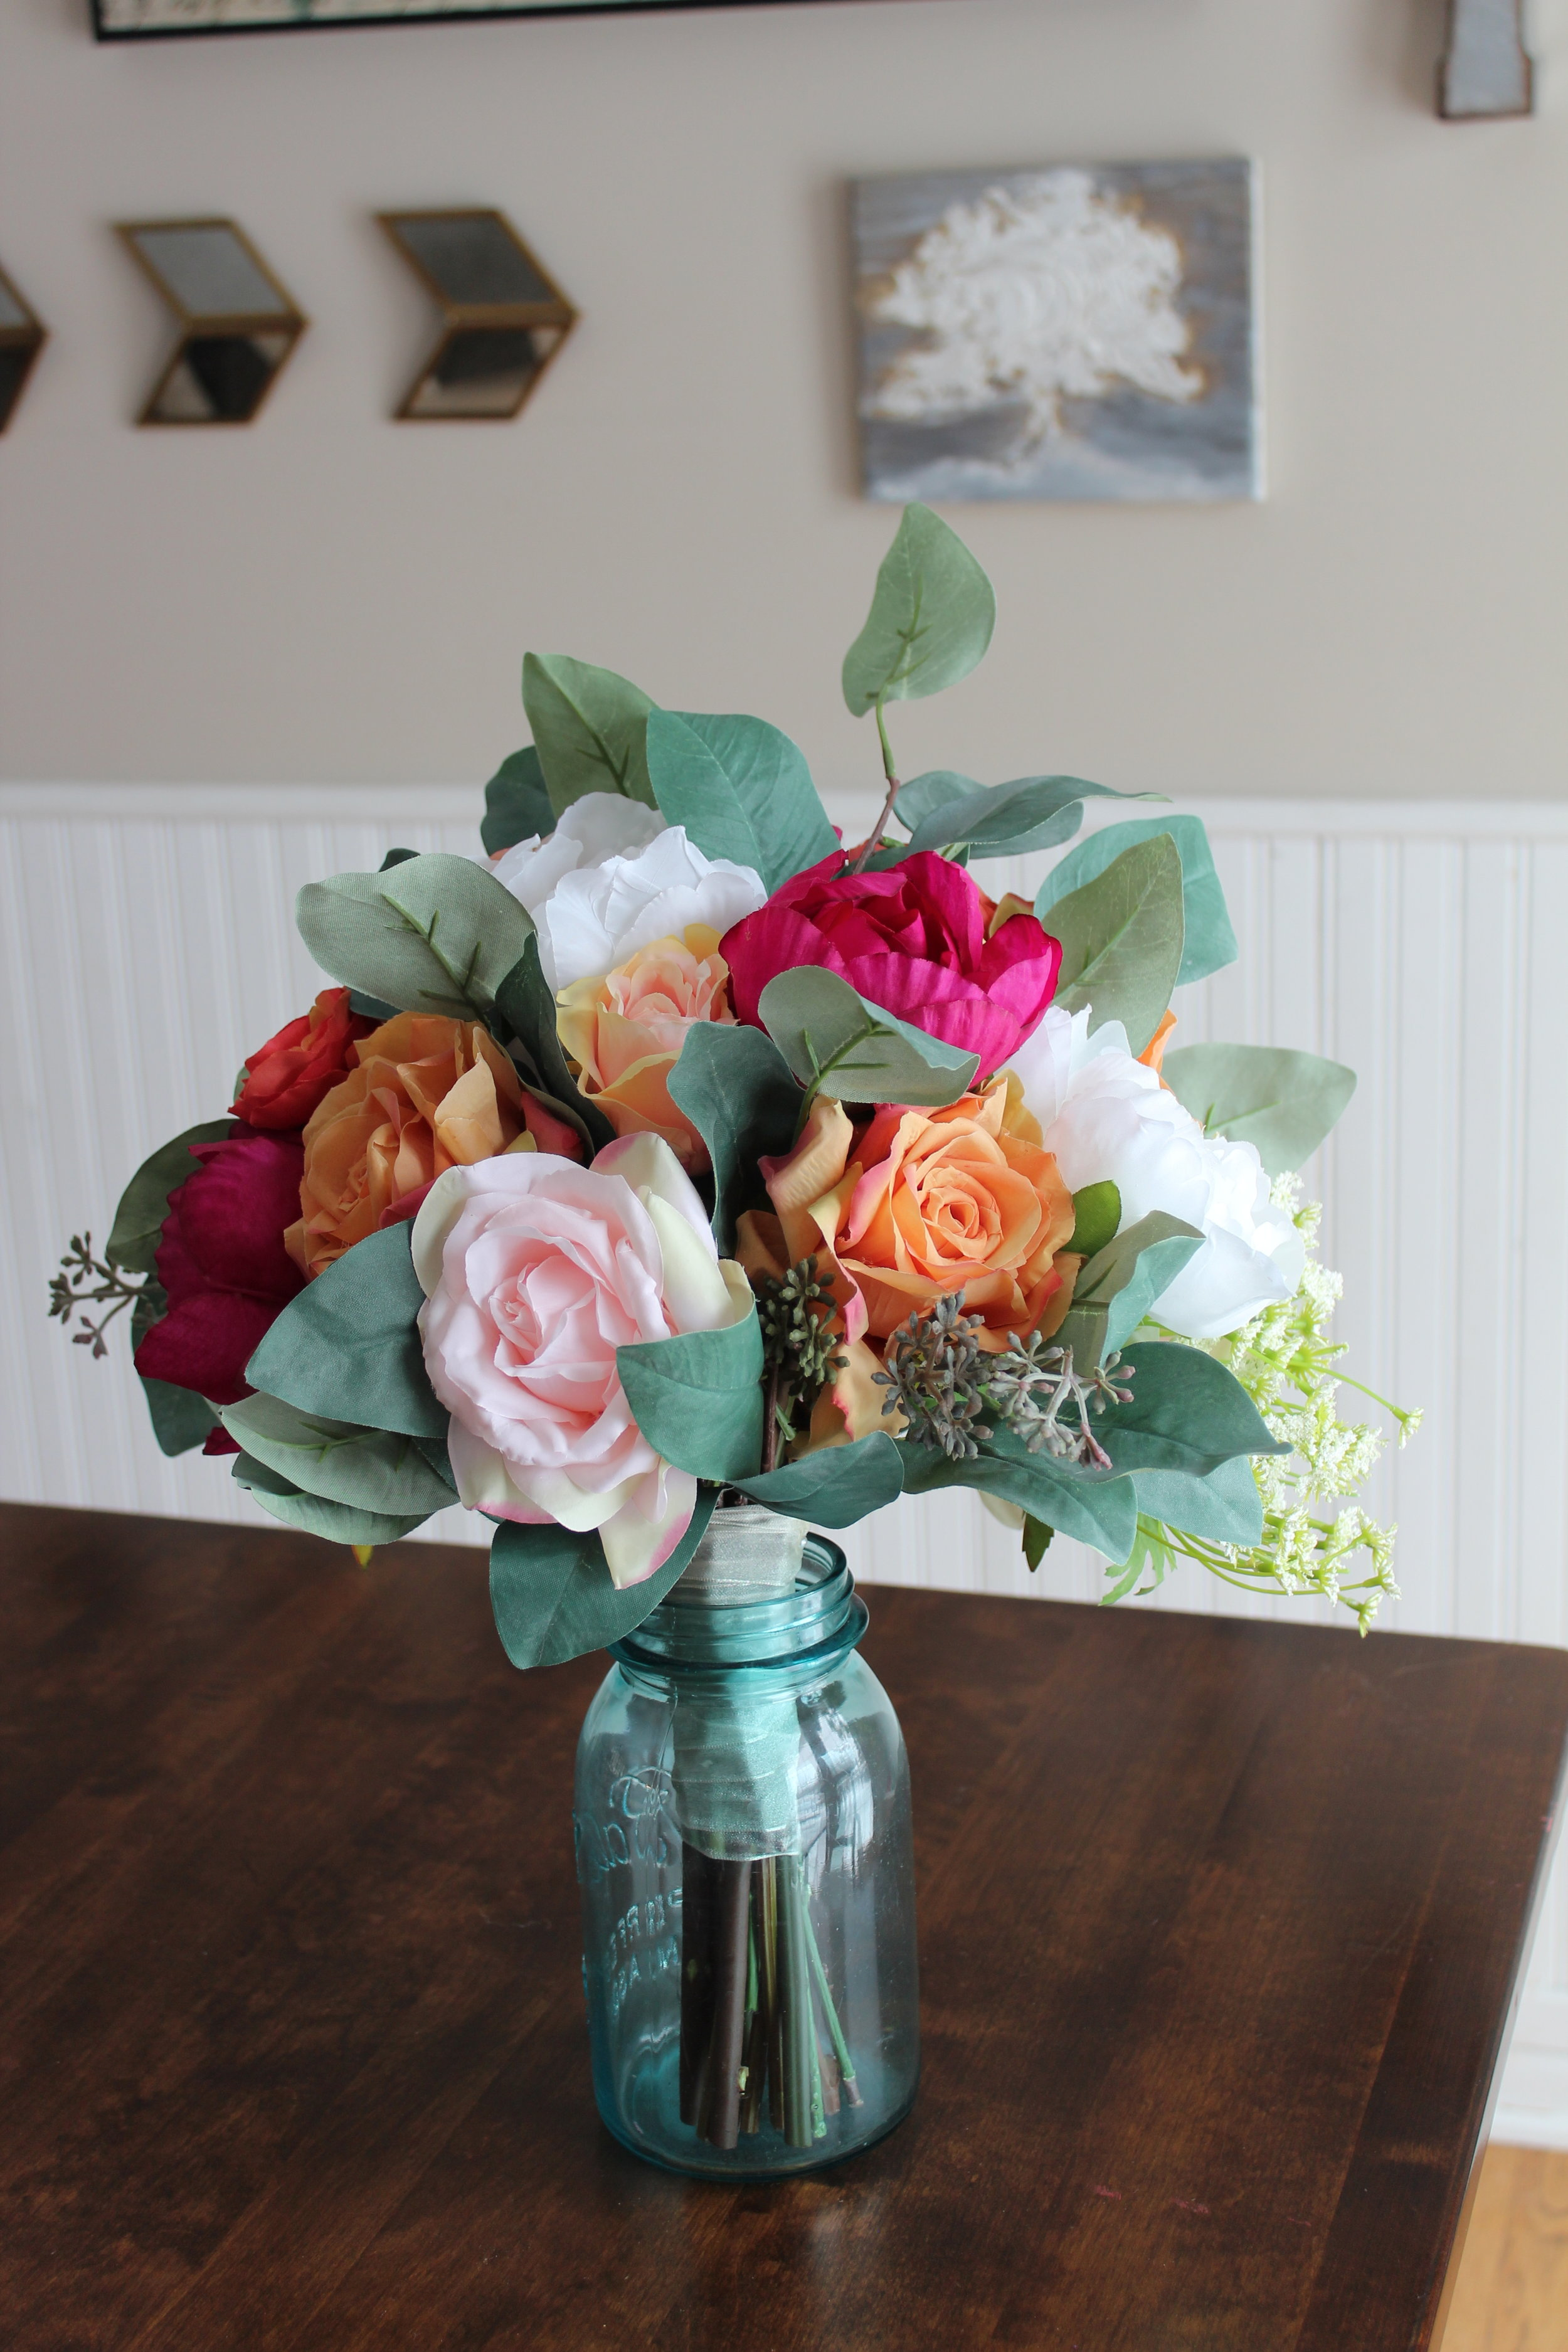 silk-wedding-flowers-bridal-bouquet-recreation-anniversary-gift.jpg